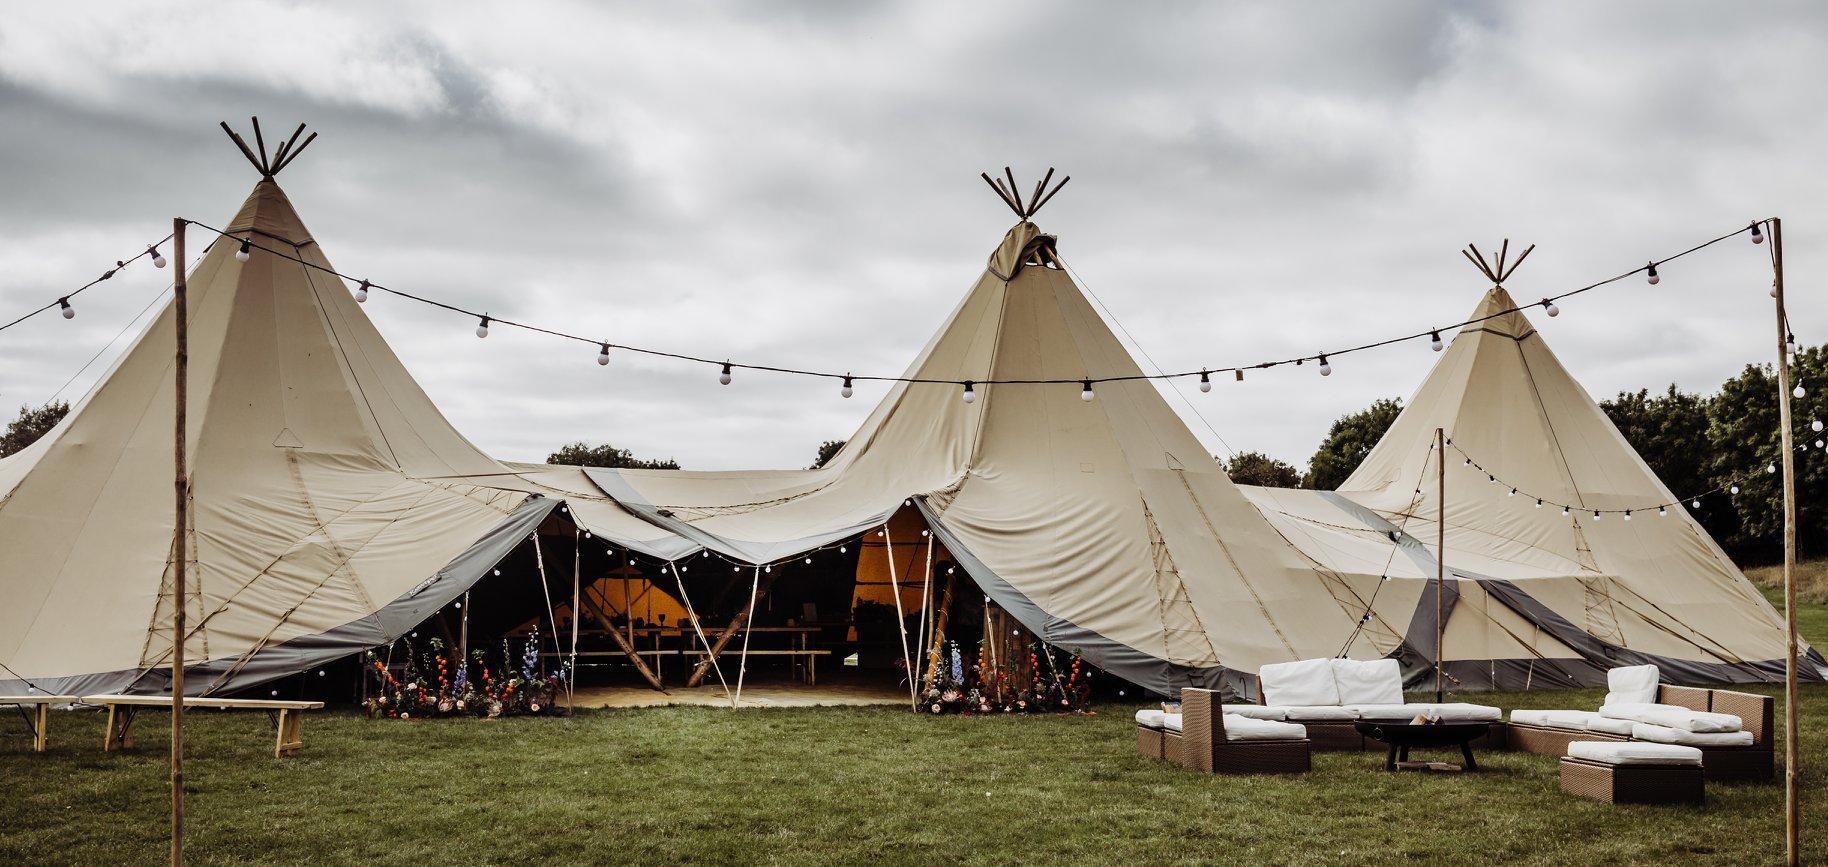 3 Giant Hat Tipis set up in a line with outdoor seating, fire pit and festoon lights on wooden poles